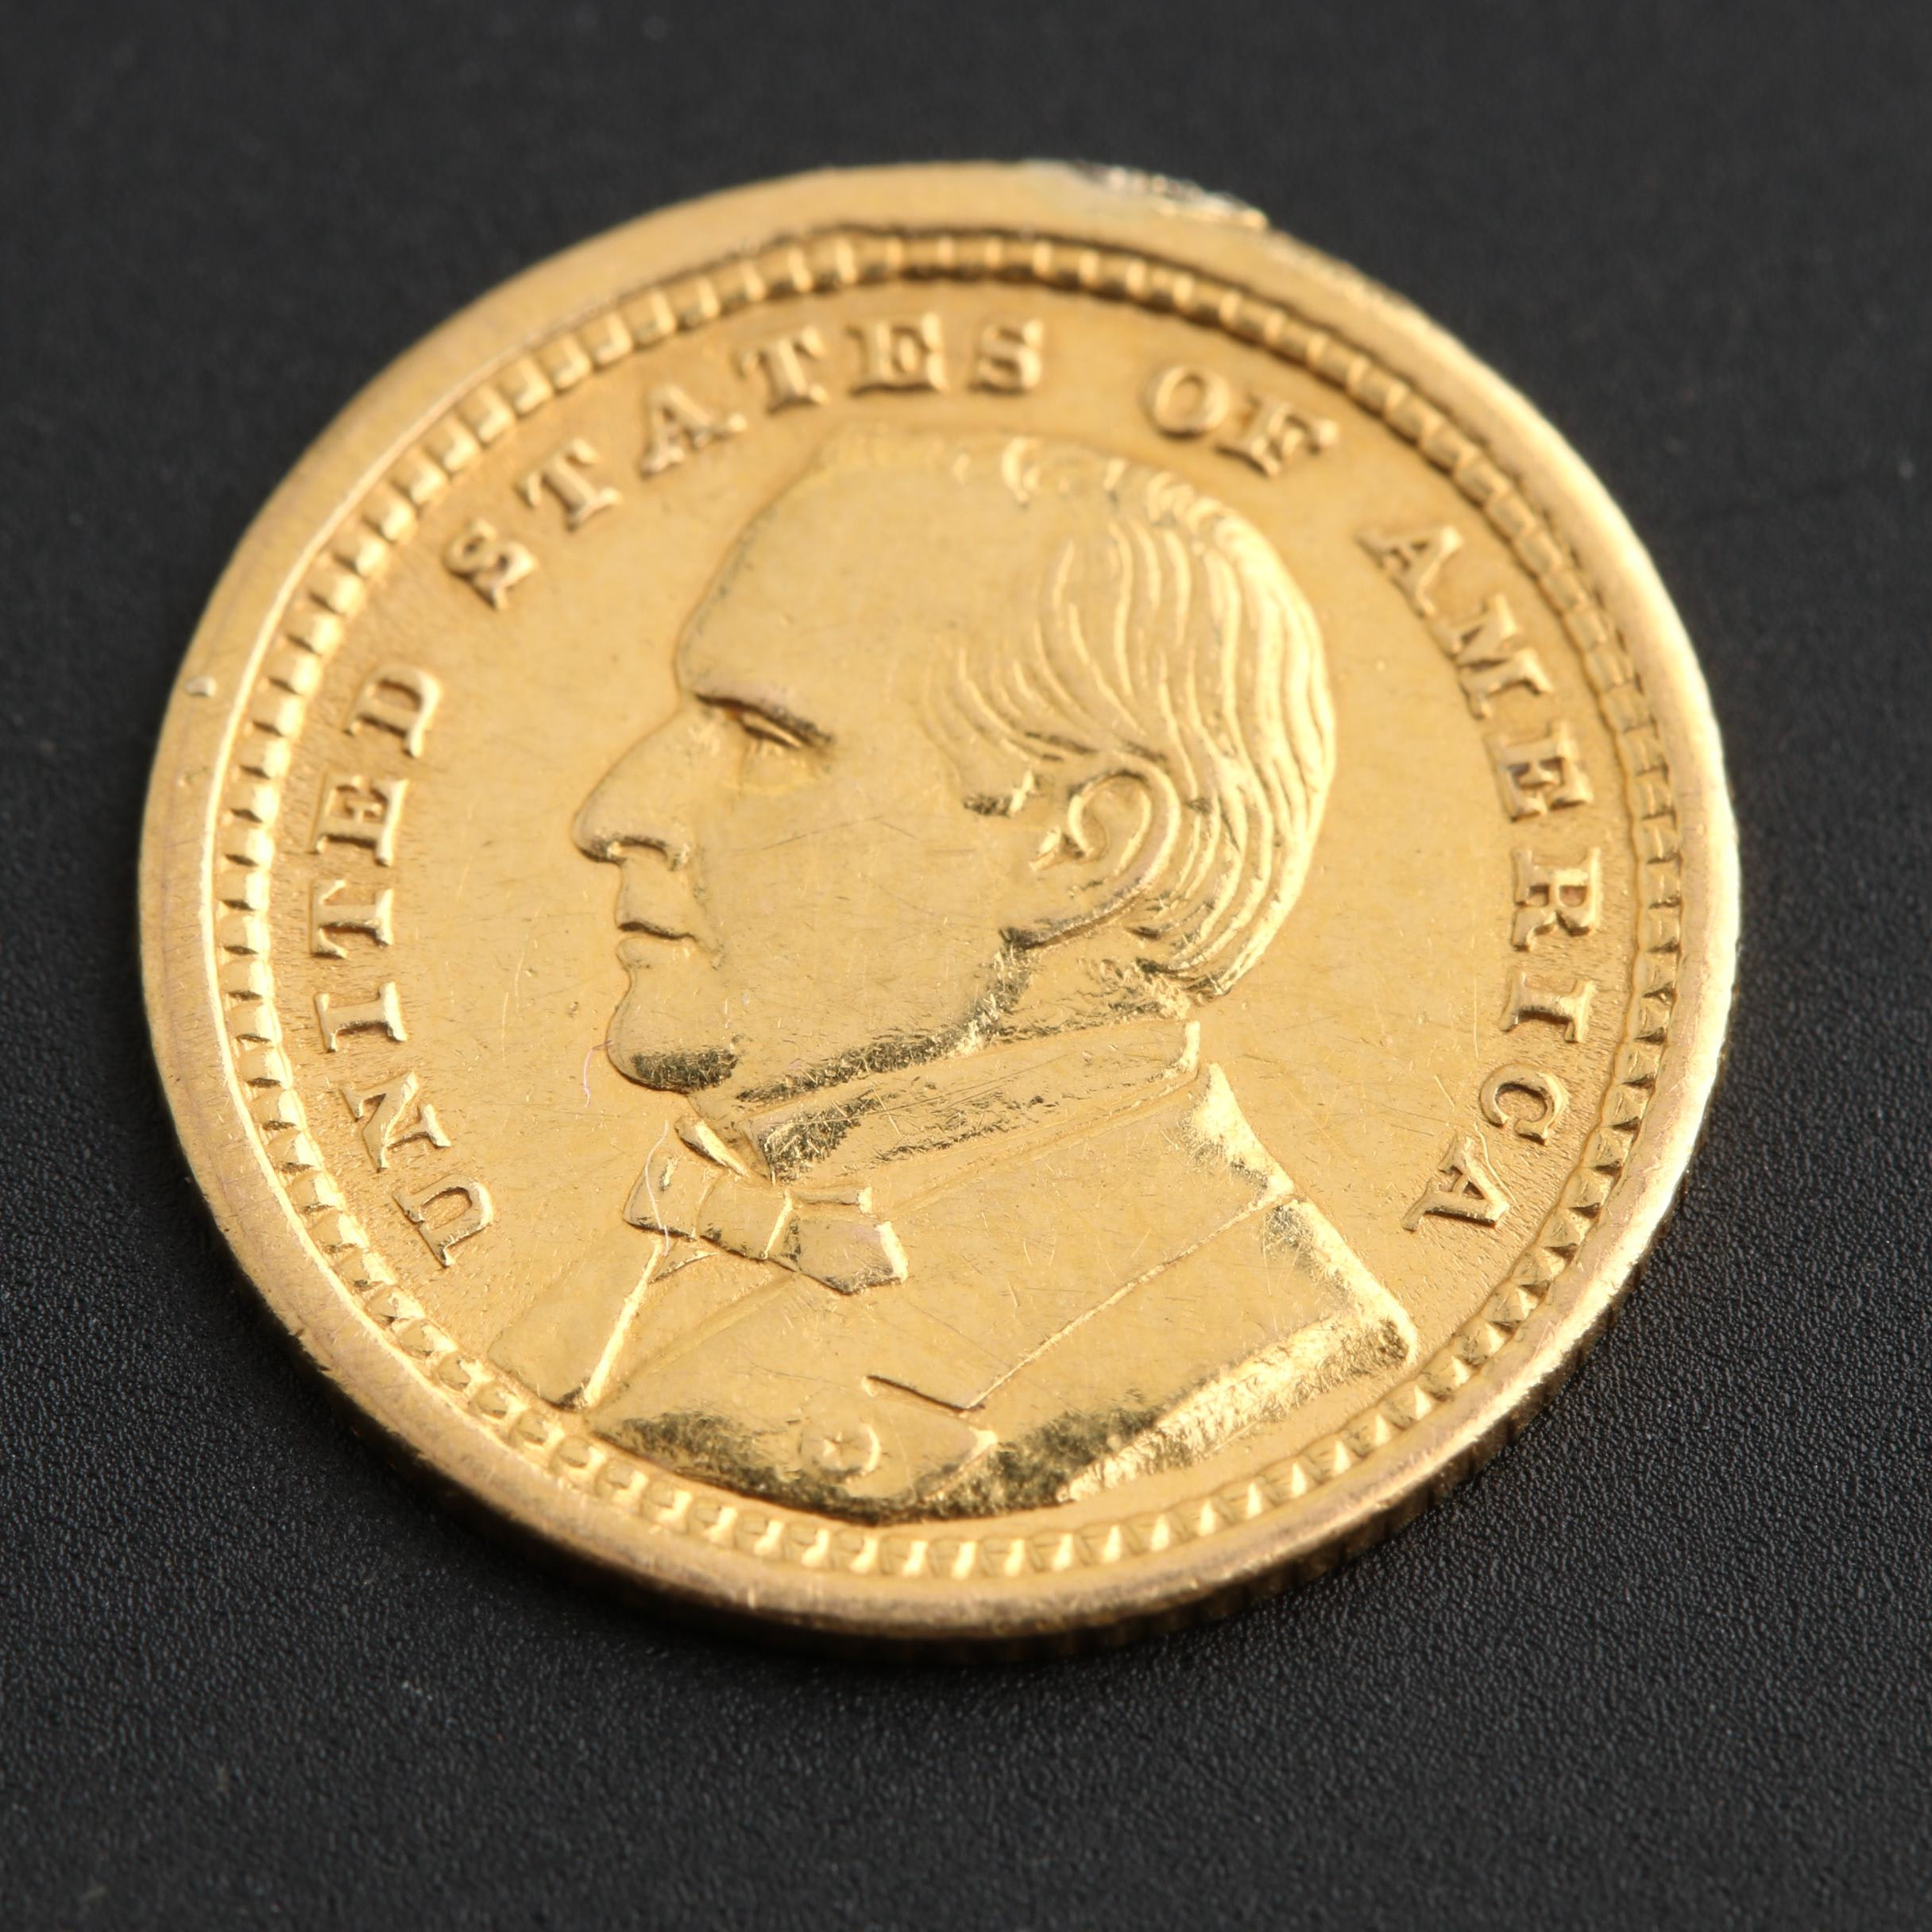 1903 Louisiana Purchase, McKinley Obverse $1 Gold Commemorative Coin